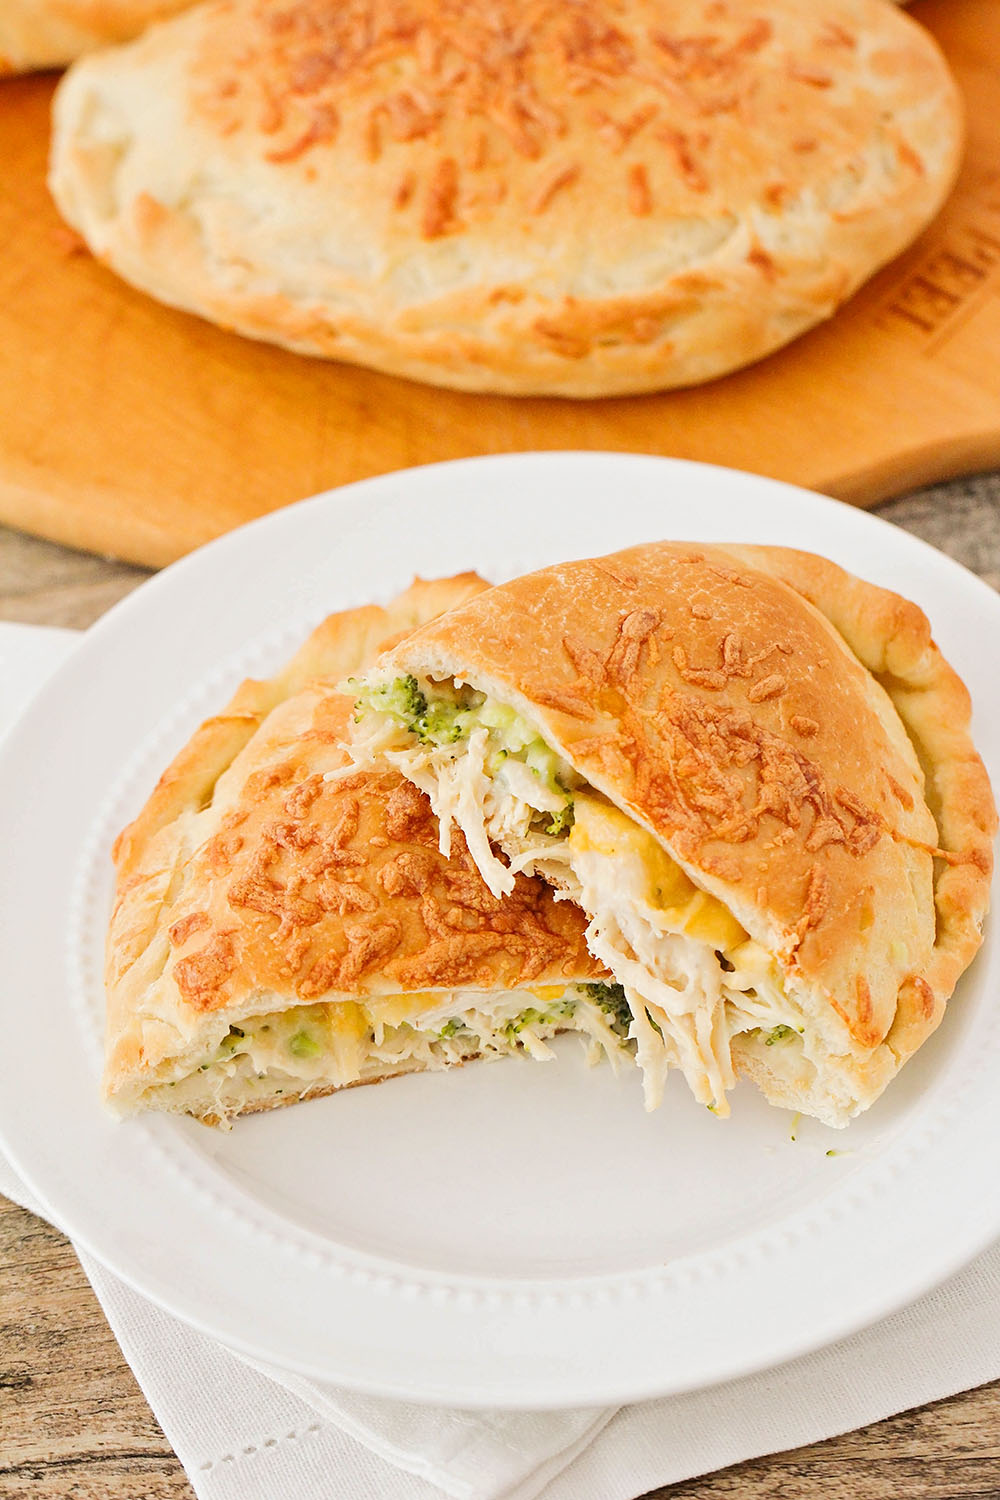 These cheesy and savory chicken and broccoli pockets are freezer friendly and perfect for a hearty lunch or easy dinner!